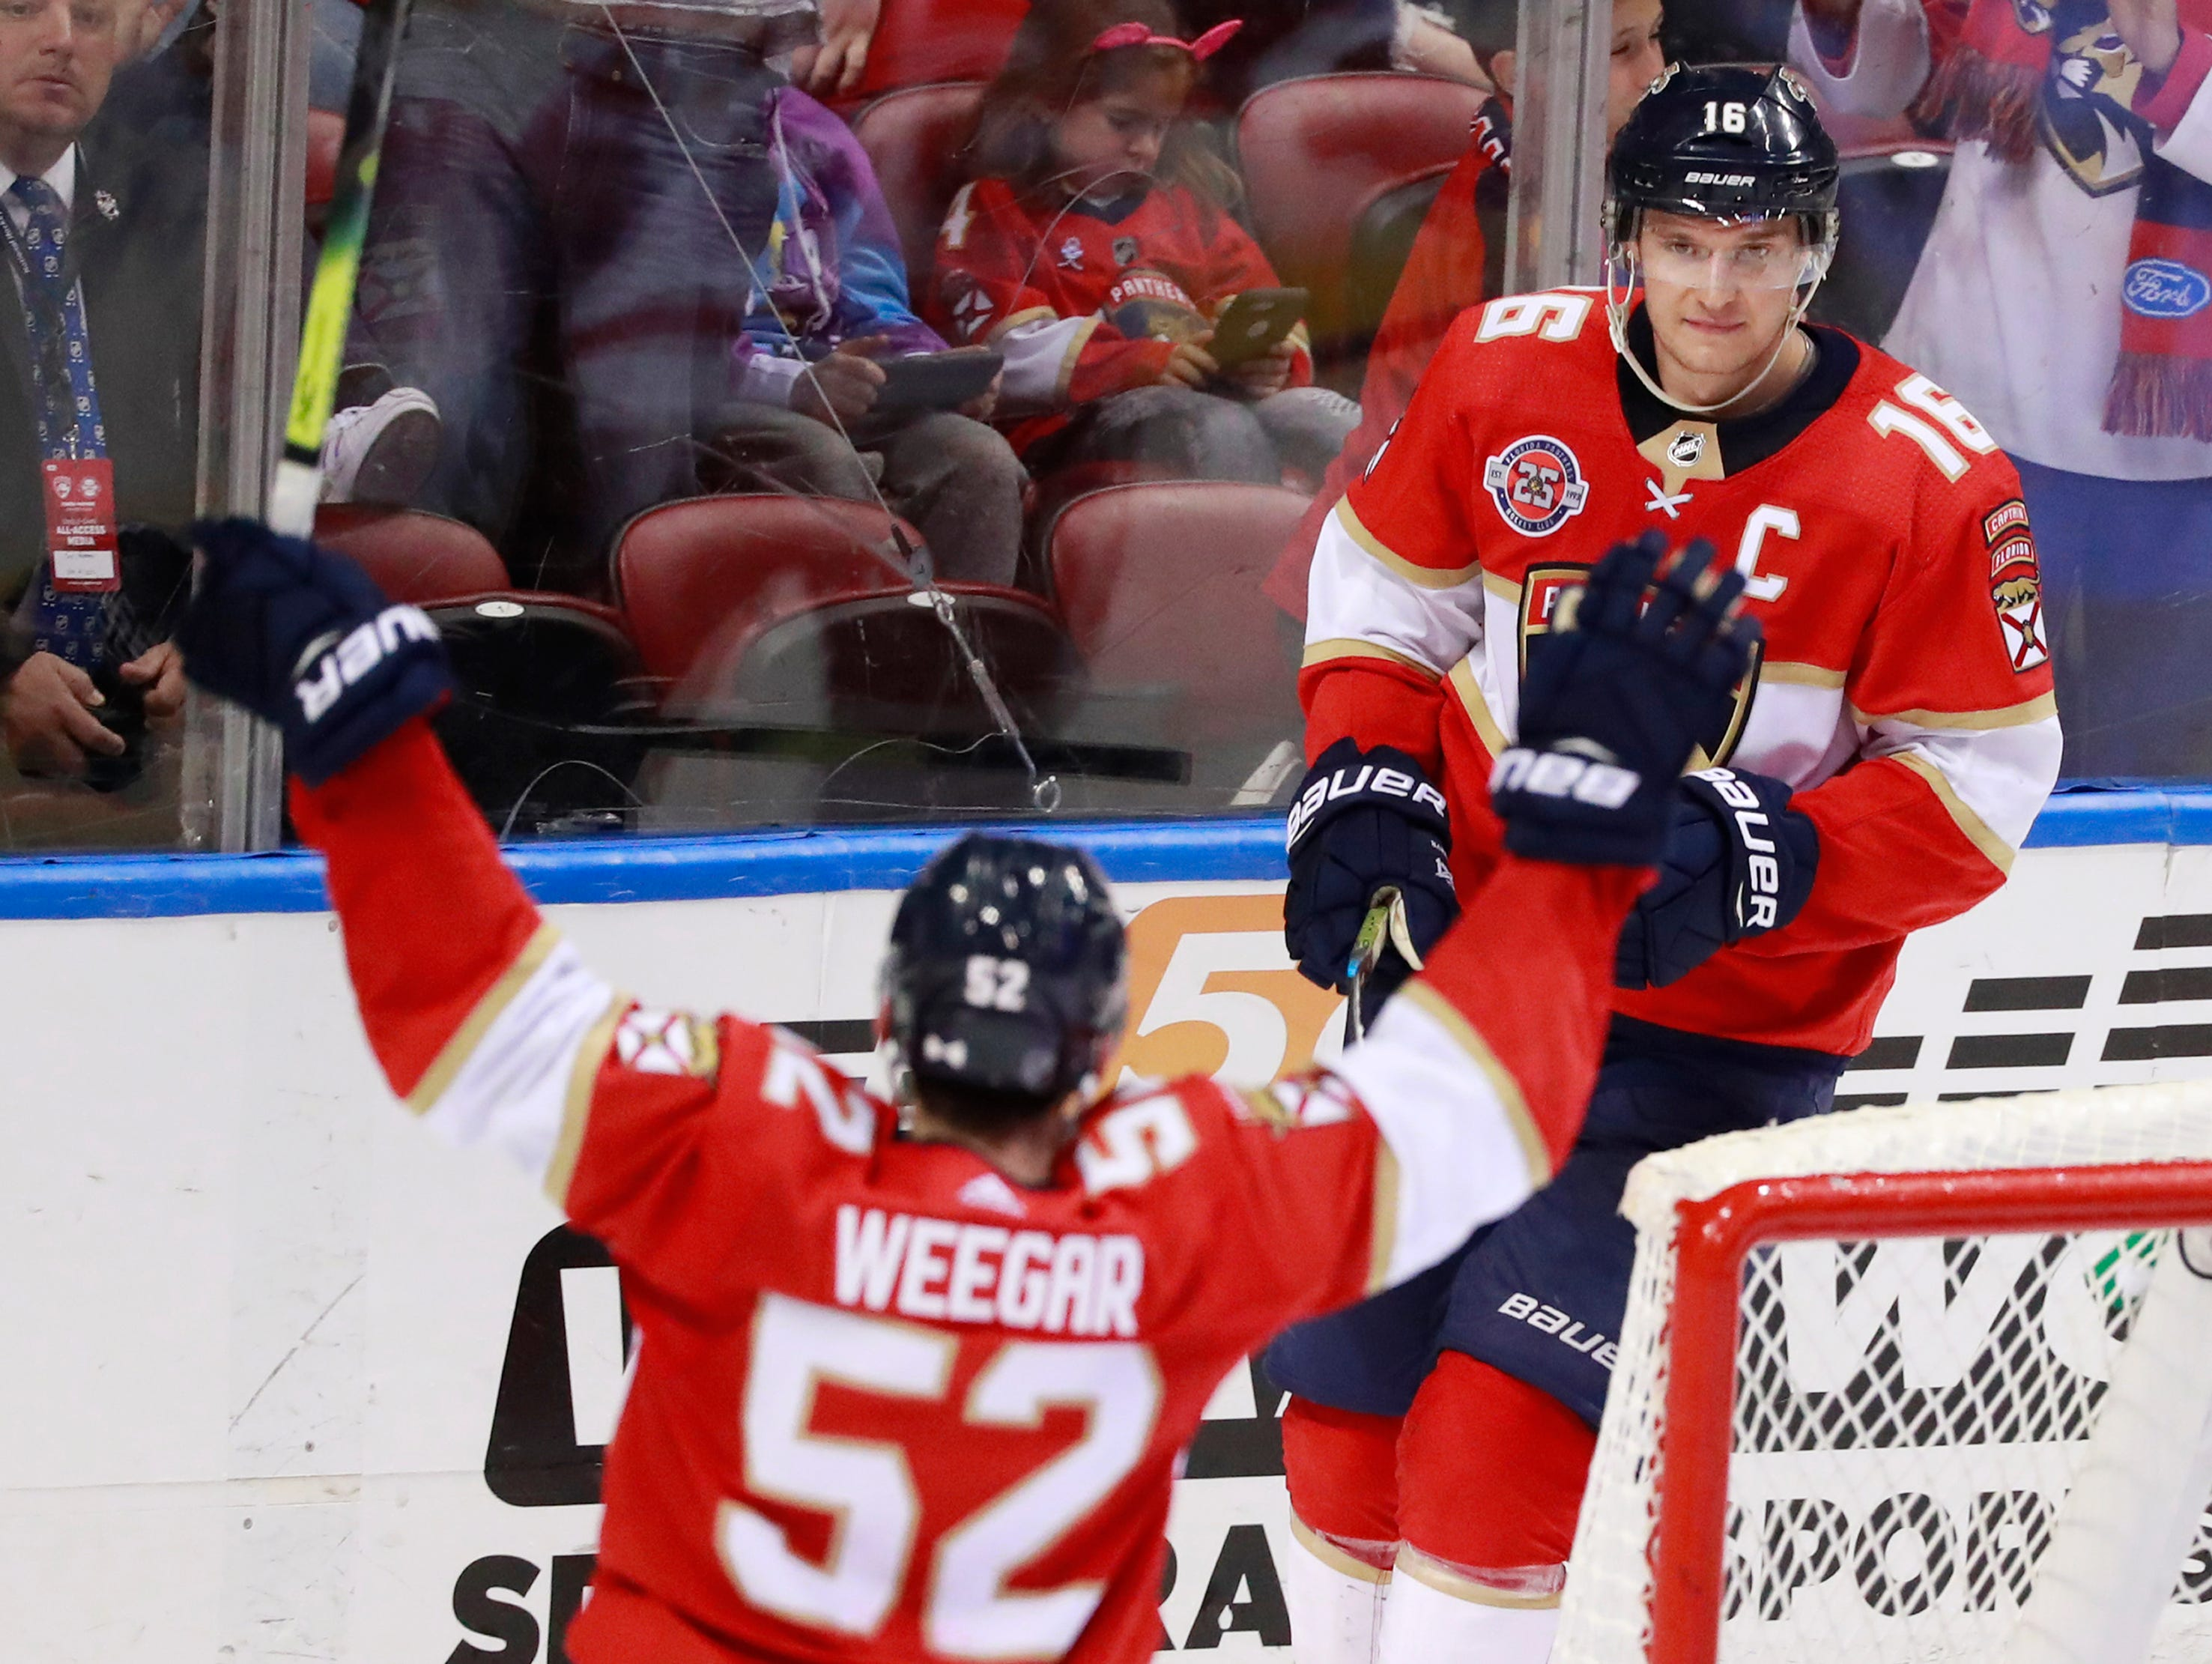 Florida Panthers defenseman MacKenzie Weegar (52) congratulates center Aleksander Barkov (16) after Barkov scored during the third period.